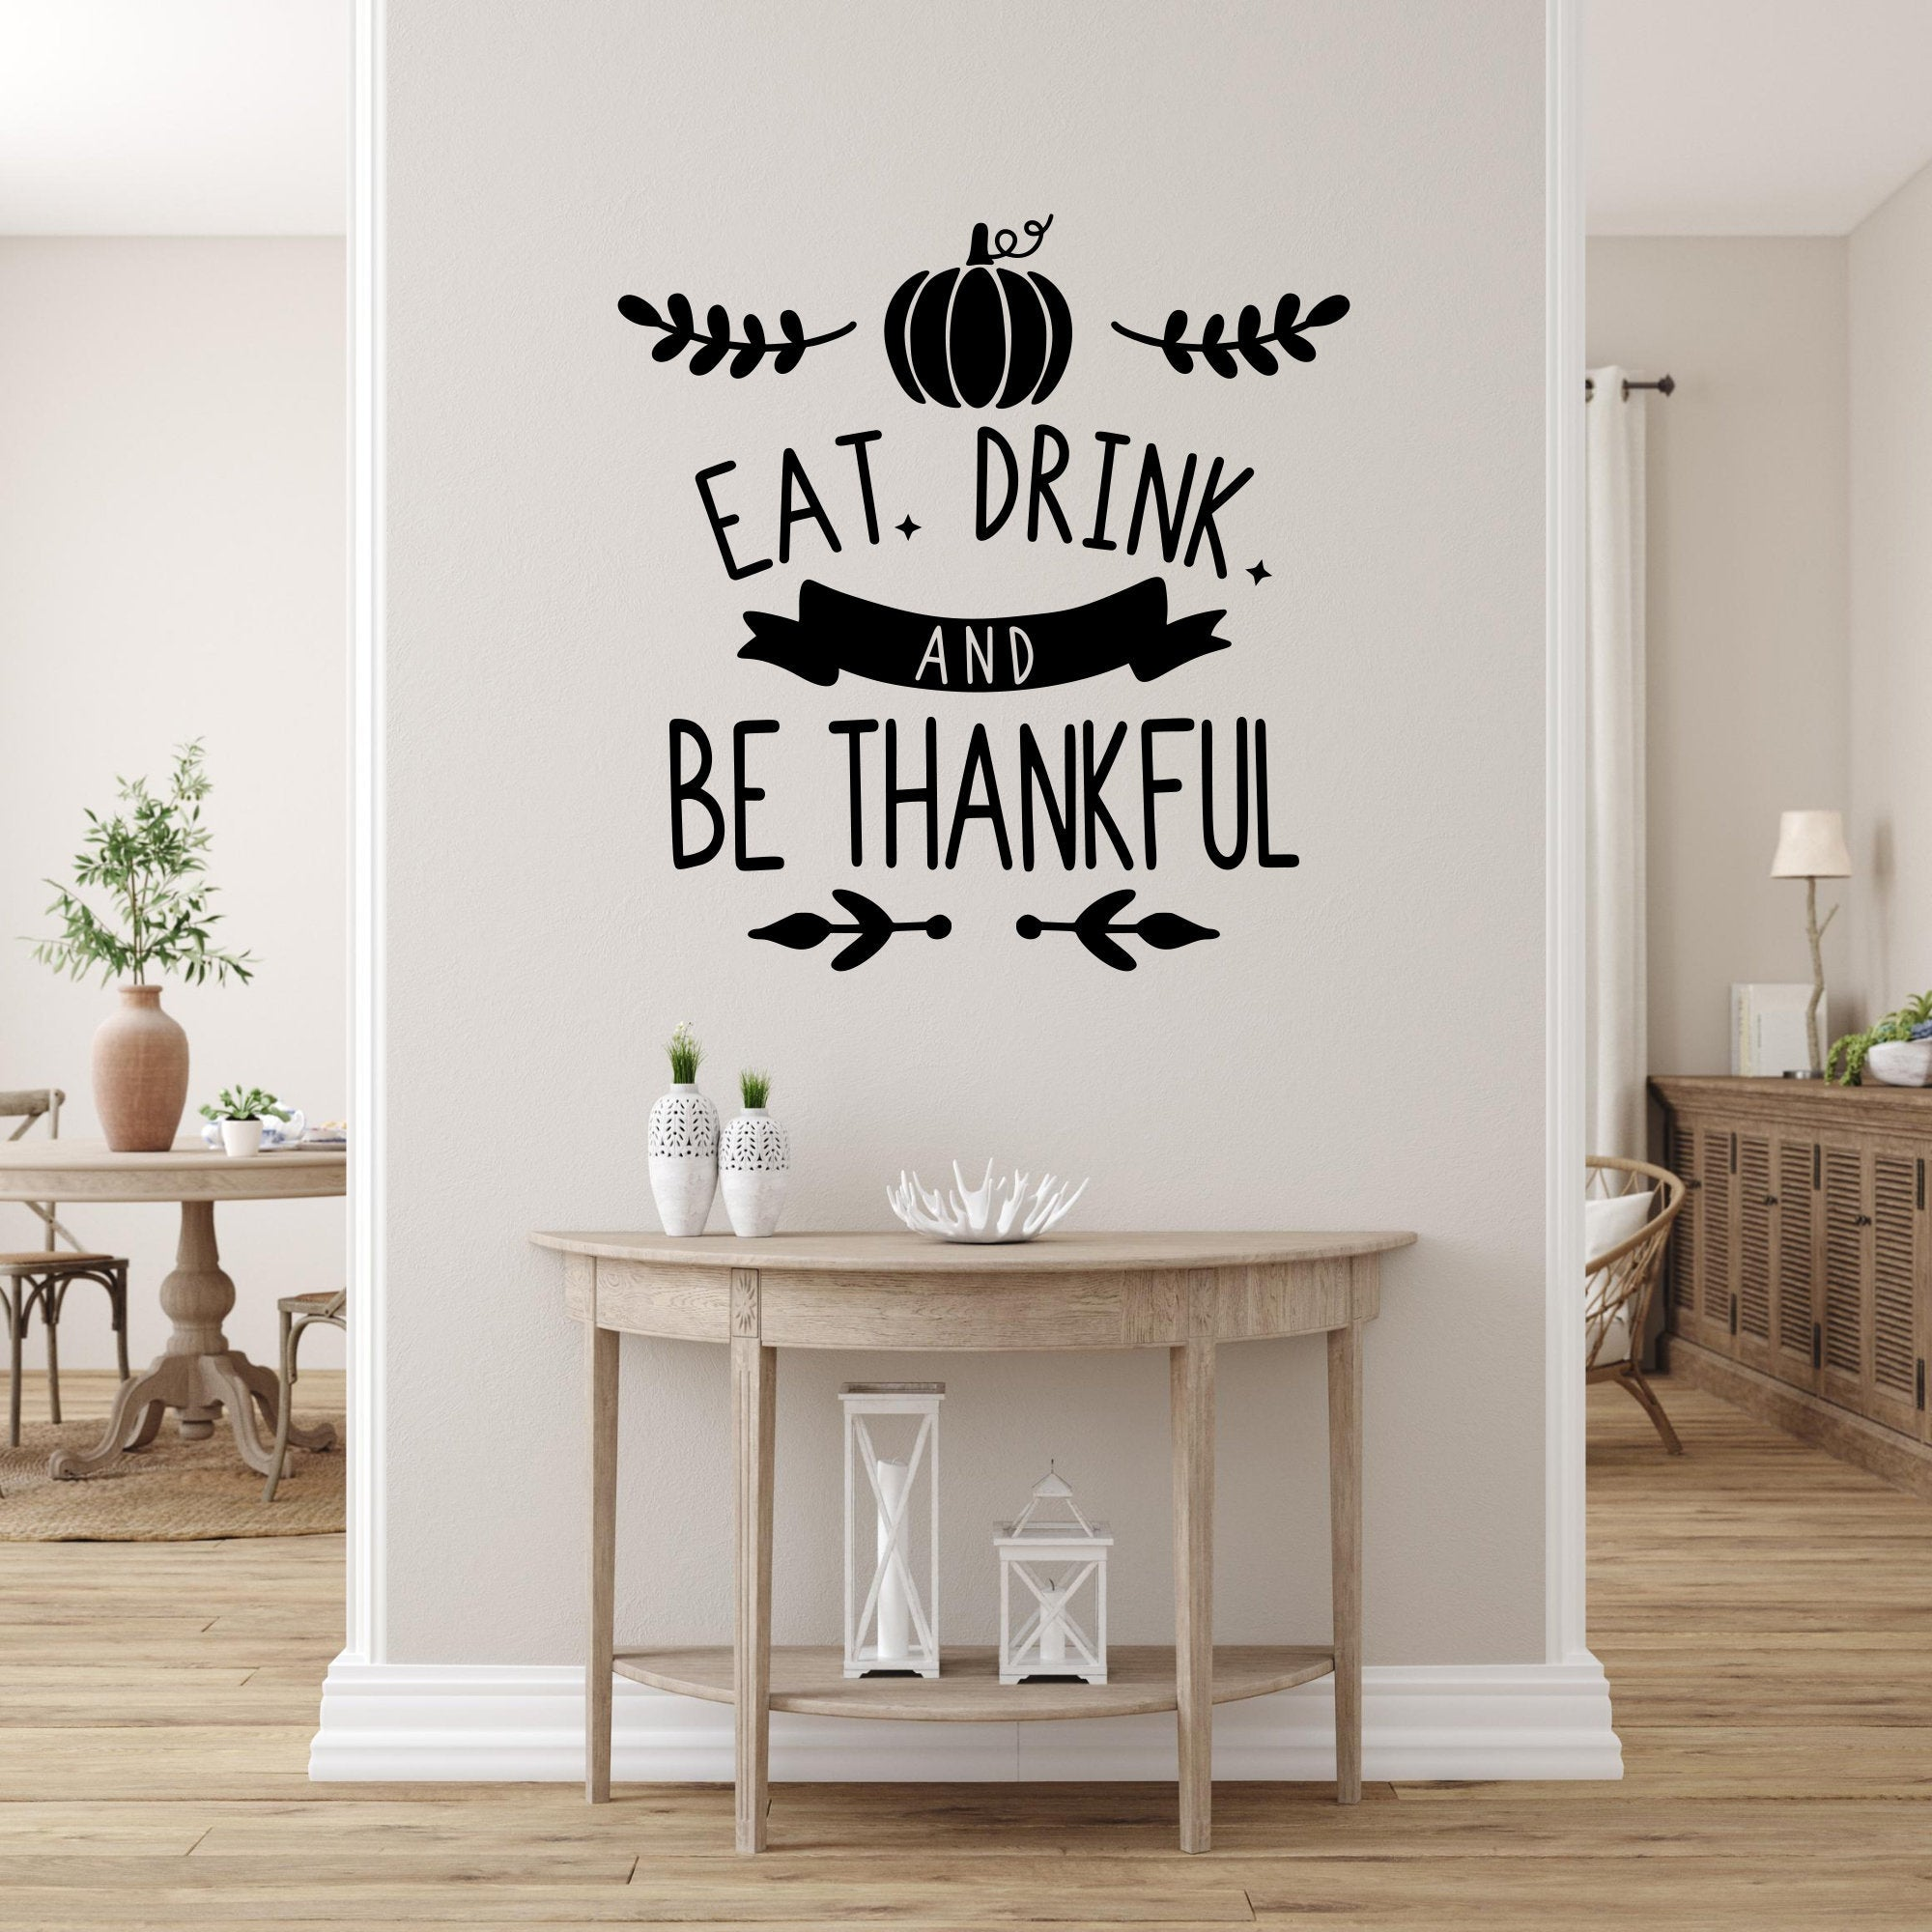 Eat Drink and Be Thankful | Wall Decal | Fall Decor | Fall Signs | Thanksgiving Decor